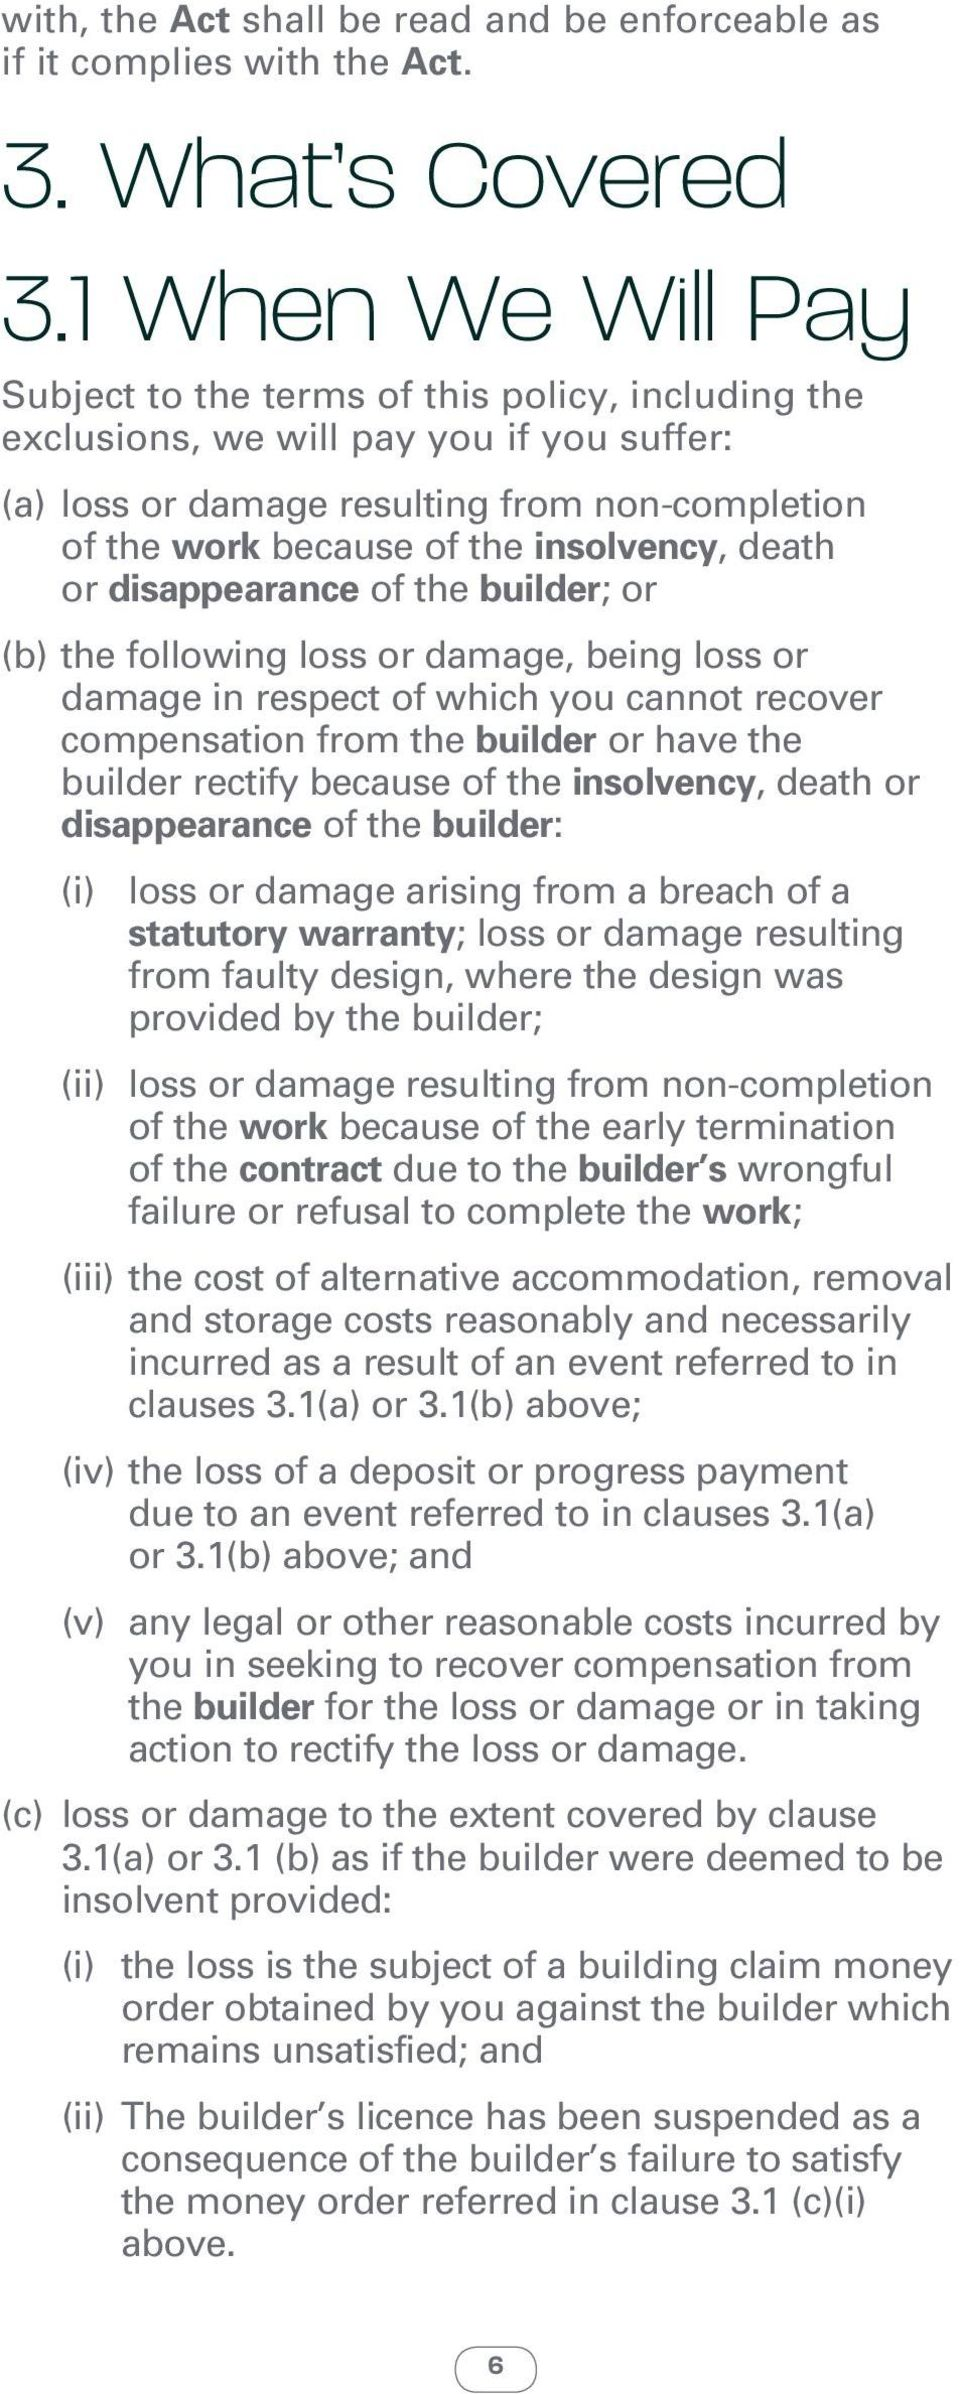 insolvency, death or disappearance of the builder; or (b) the following loss or damage, being loss or damage in respect of which you cannot recover compensation from the builder or have the builder